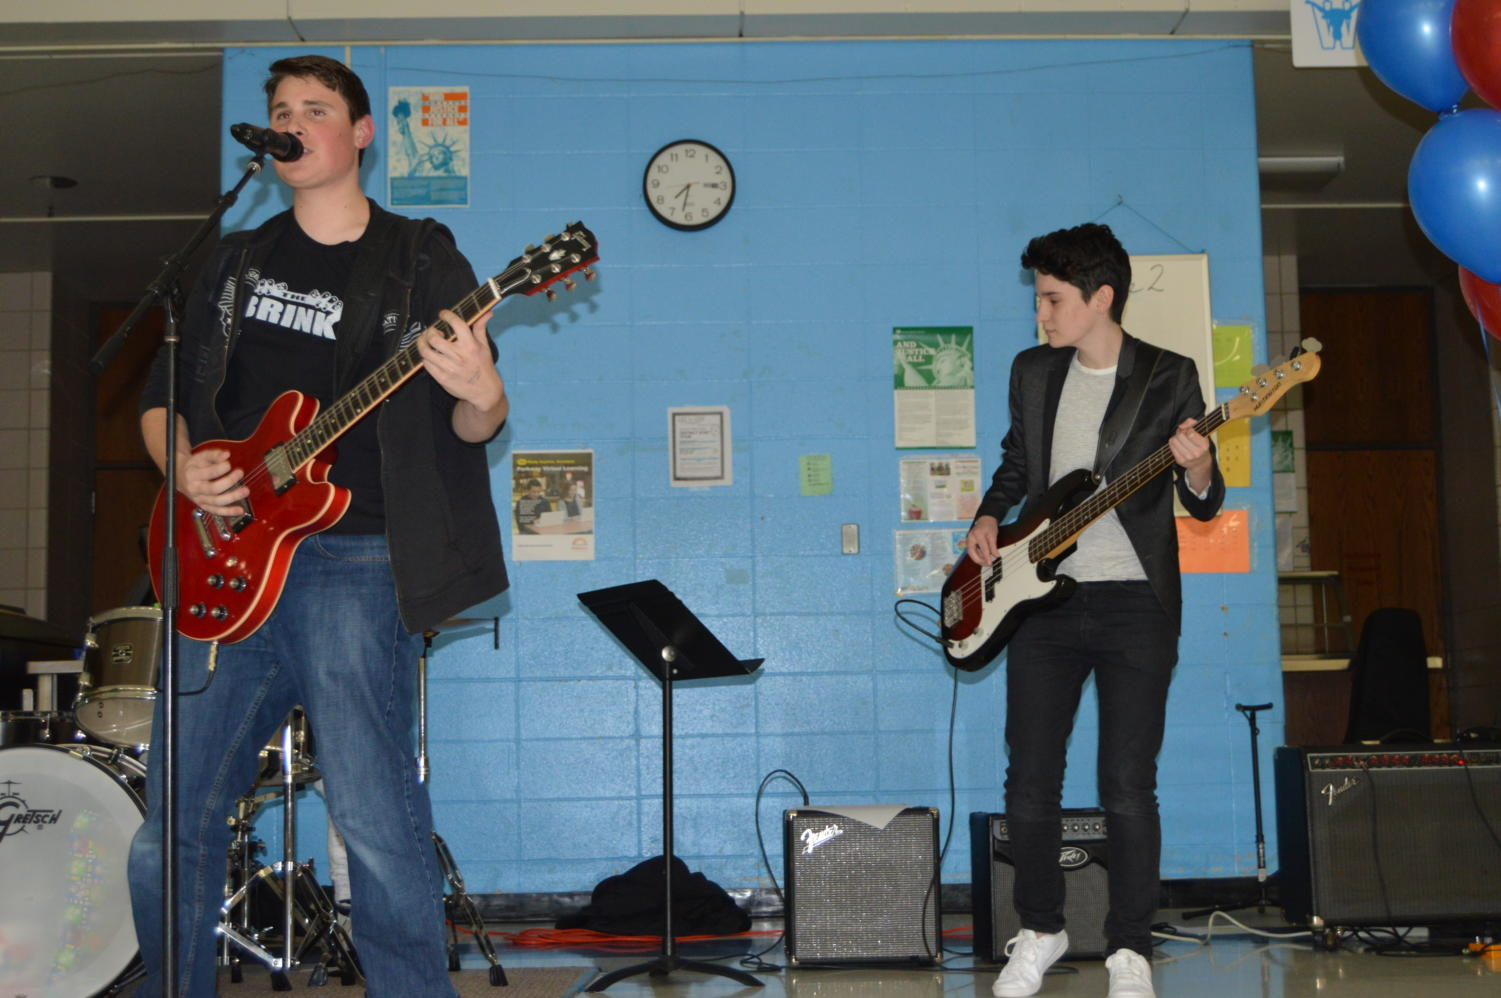 "Playing Blink-182, Green Day and The Killers covers, sophomore Ryan Egan and junior Dani Fischer play guitar and bass, respectively. Although Fischer is not part of The Brink, she filled in for the benefit concert. ""We pulled some songs that we regularly do from most of our gigs. I definitely went for songs that everyone would know, but at the same time, I wanted to choose songs that were fun to play, so we could have a good rock-out,"" Egan said."